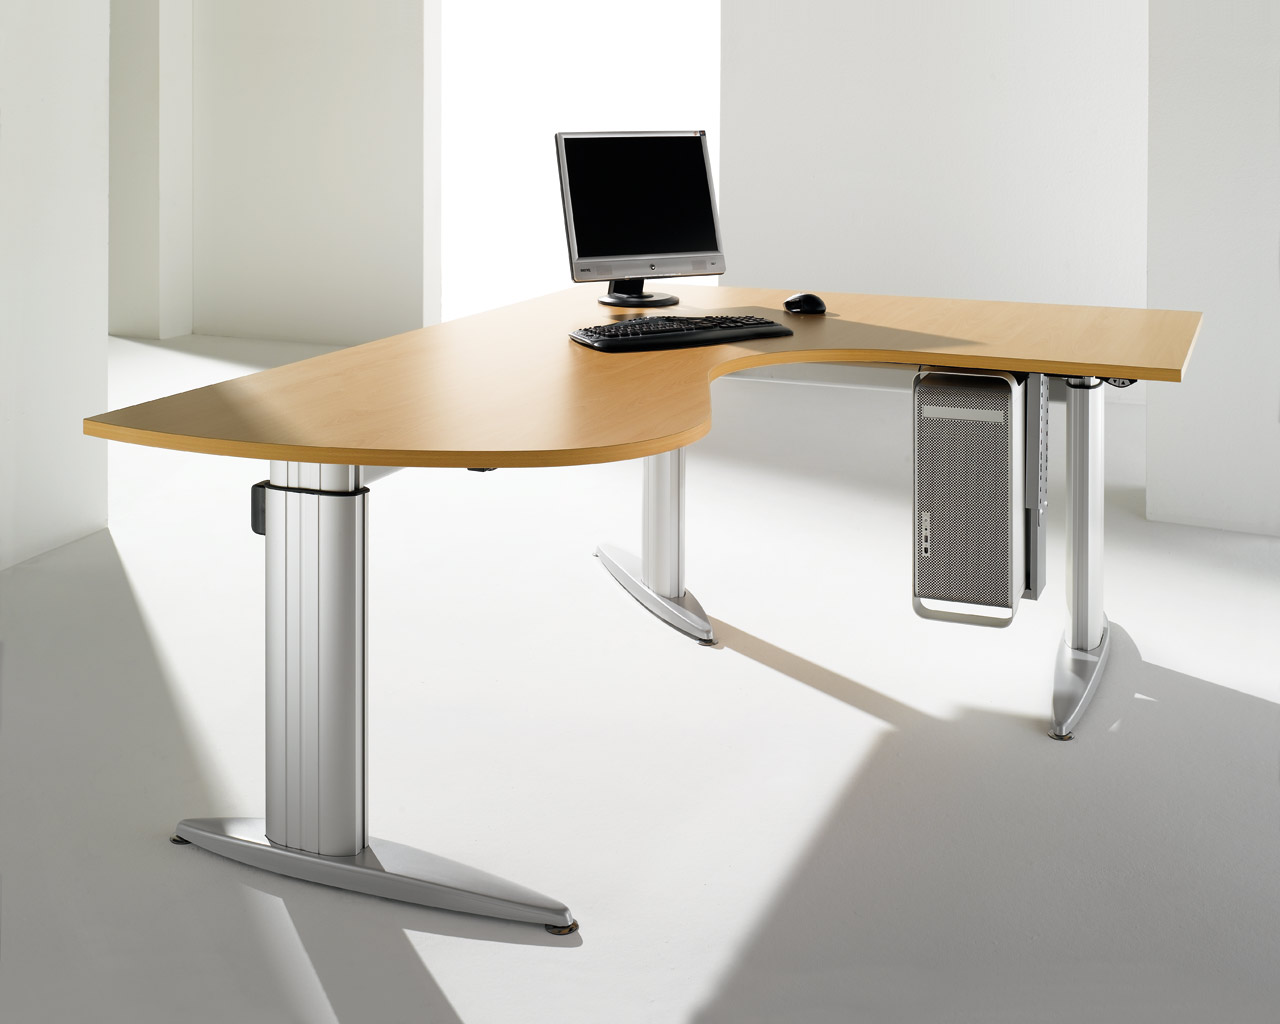 Eckschreibtisch Höhenverstellbar Bz Plankenhorn Office Furniture Manufacturer Specialist For